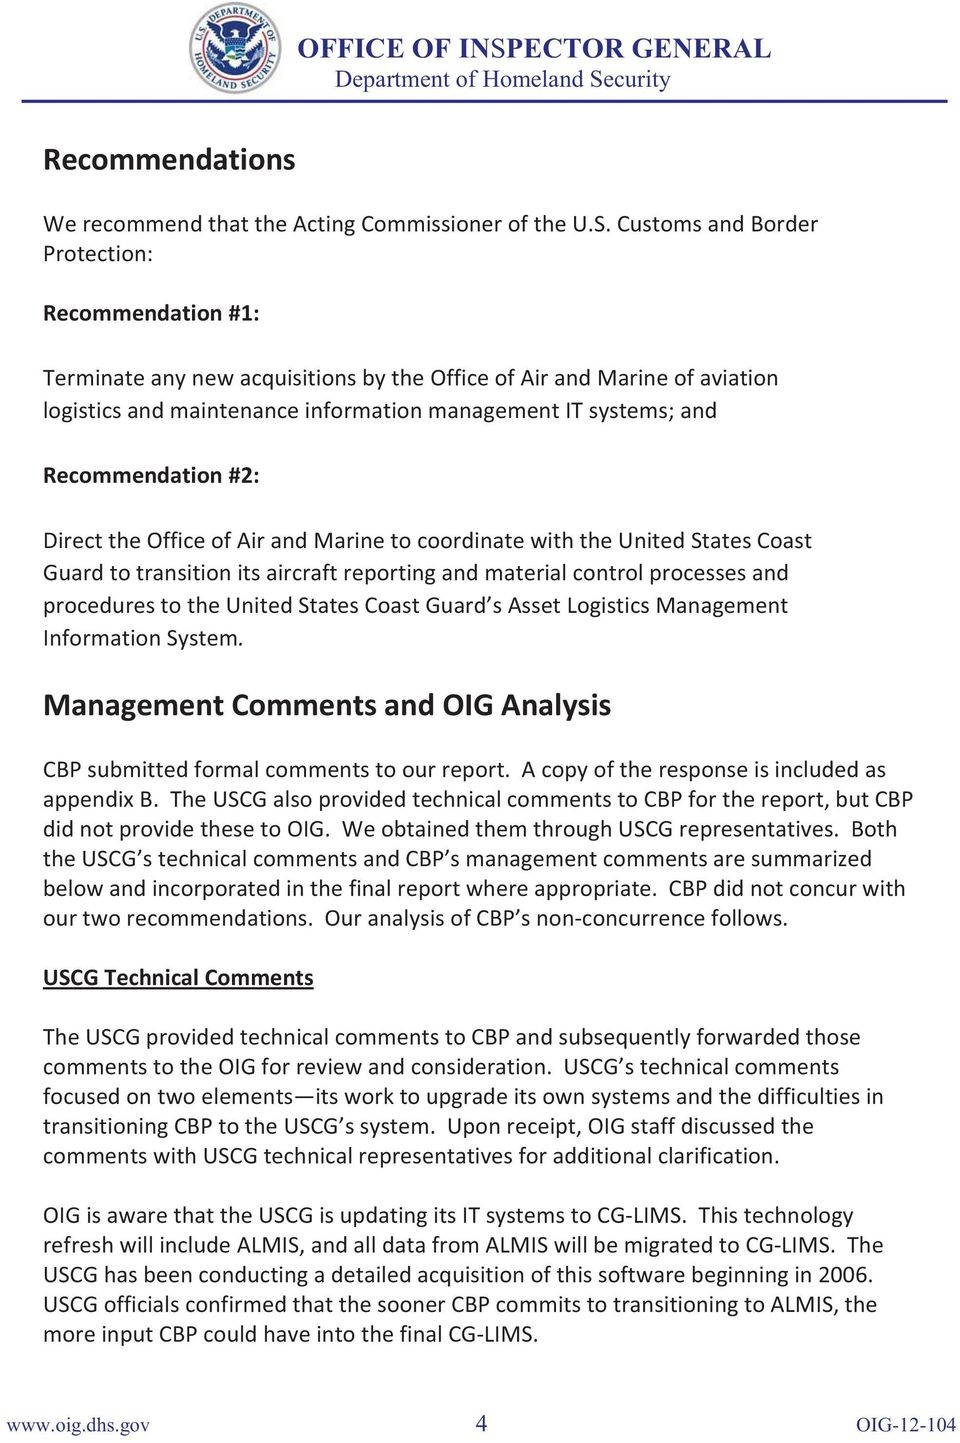 Recommendation #2: Direct the Office of Air and Marine to coordinate with the United States Coast Guard to transition its aircraft reporting and material control processes and procedures to the